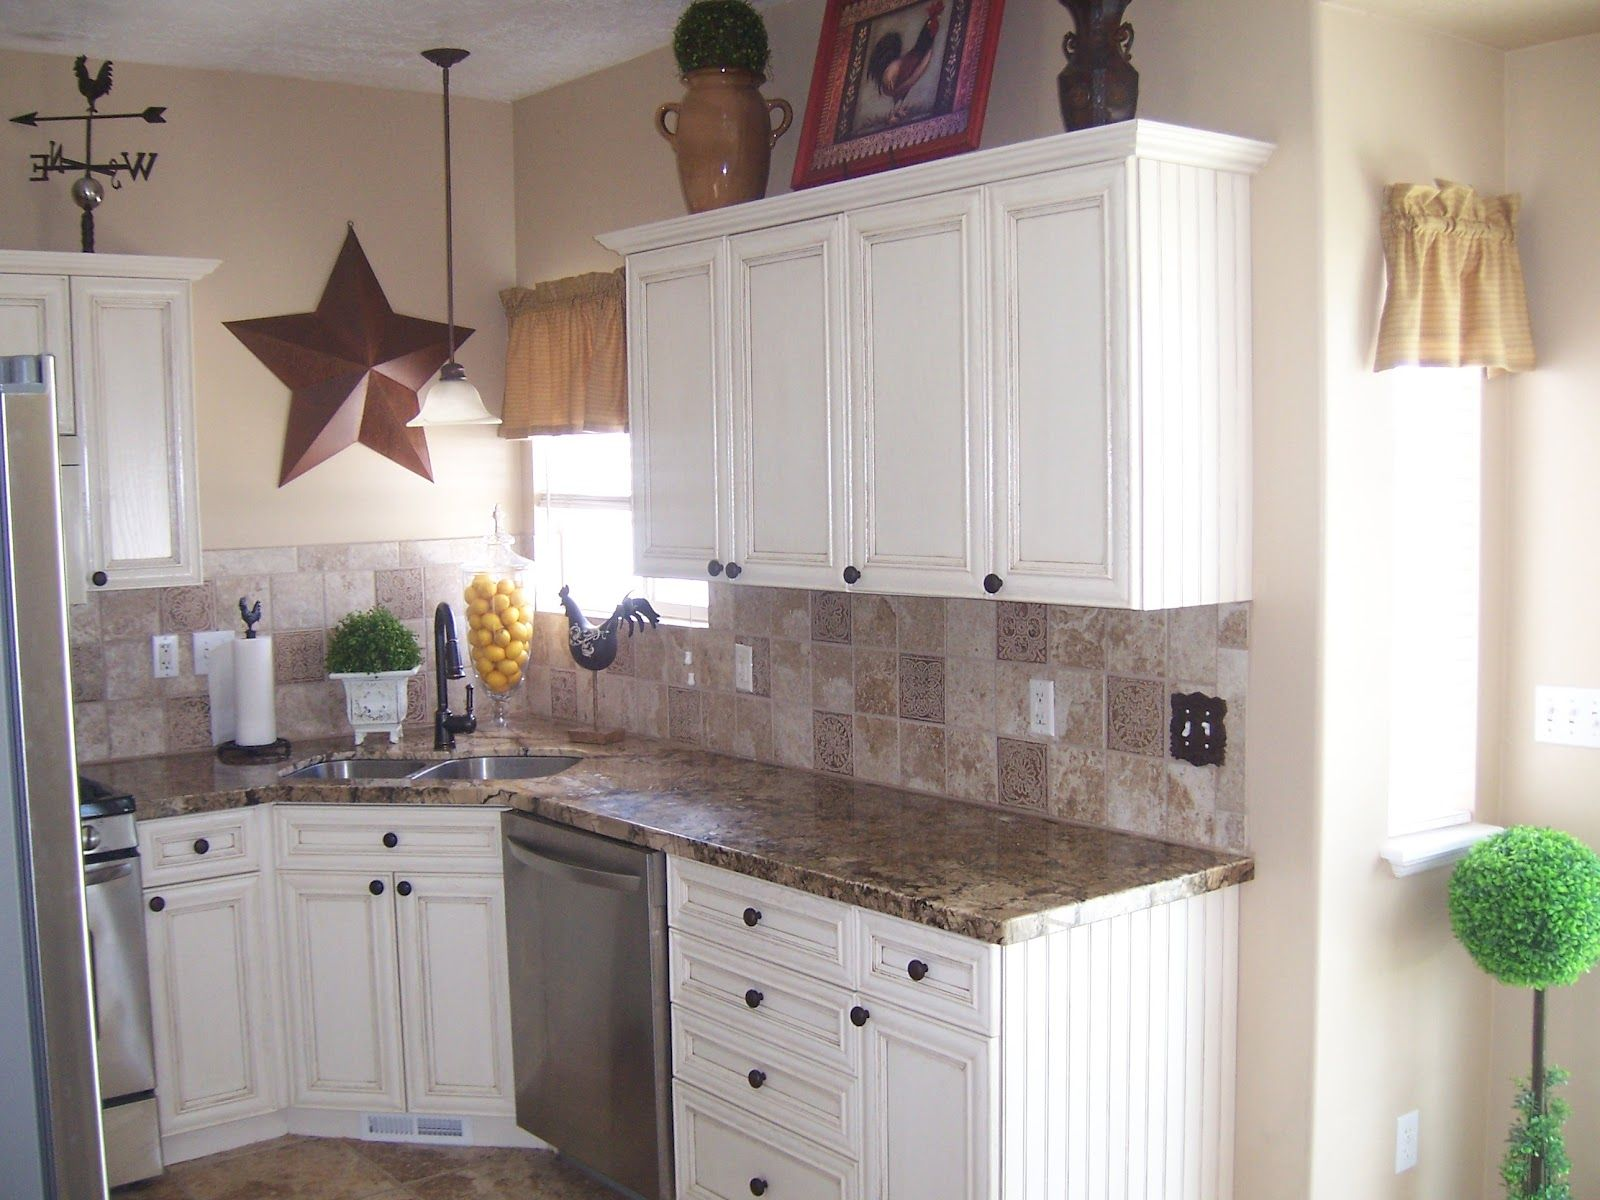 kitchen laminate countertops white cabinets with laminate countertops Laminate counter tops were replaced with a beautiful granite